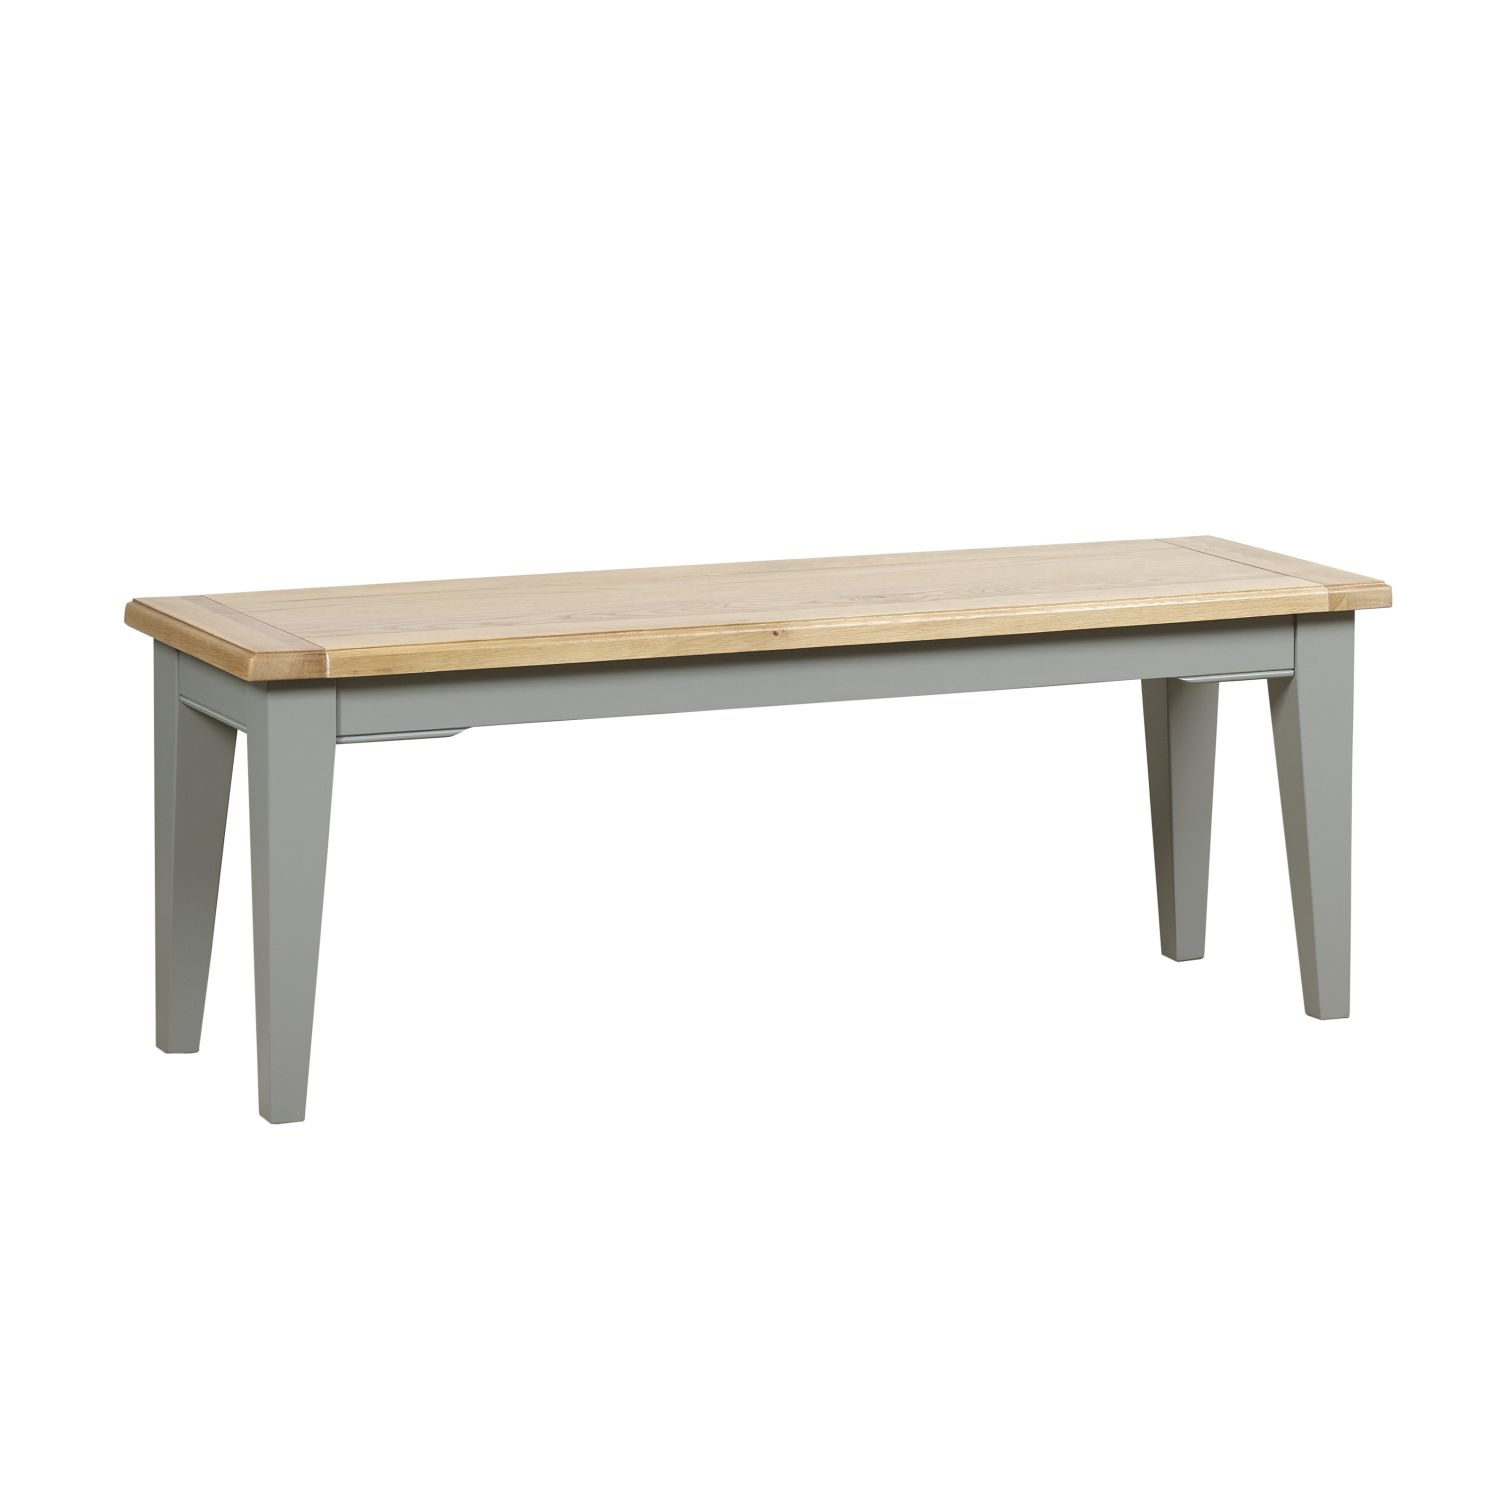 Image of Casa Wexford Dining Bench